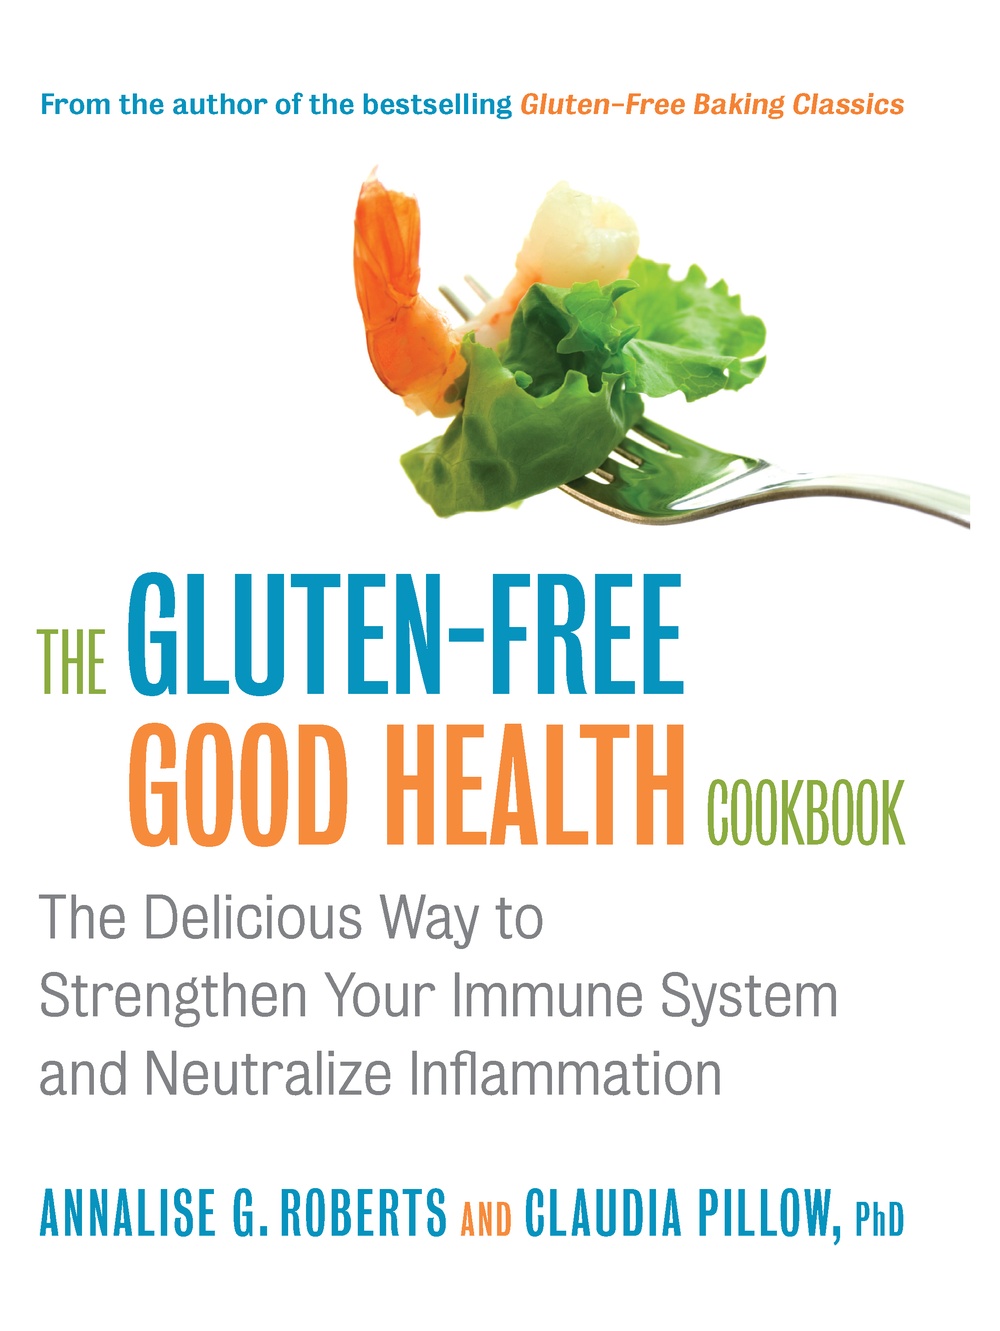 Gluten-Free Good Health Cookbook_Page_01.png